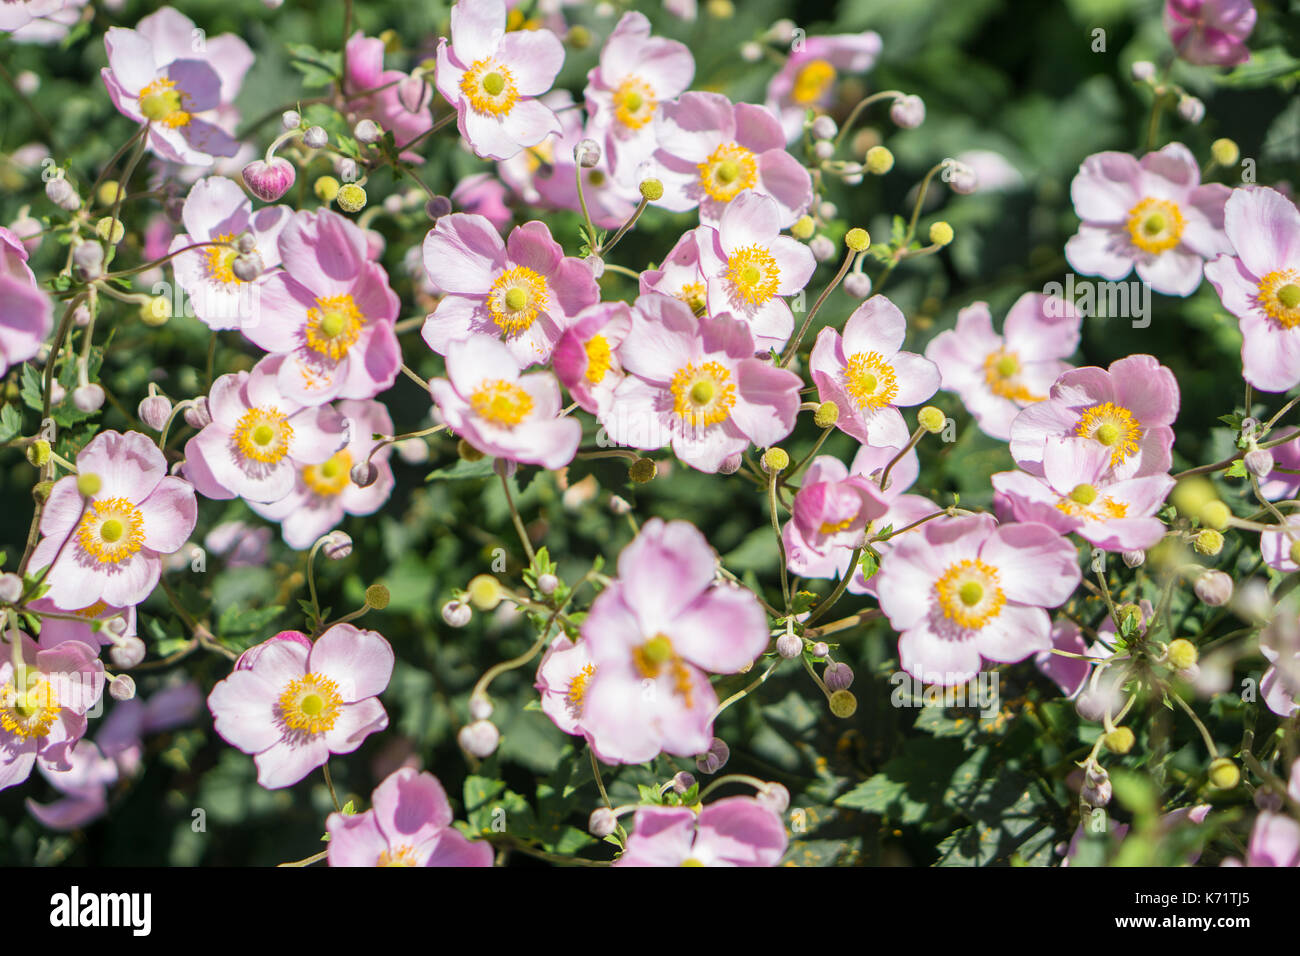 Macro close-up of magenta flowers in a park. - Stock Image